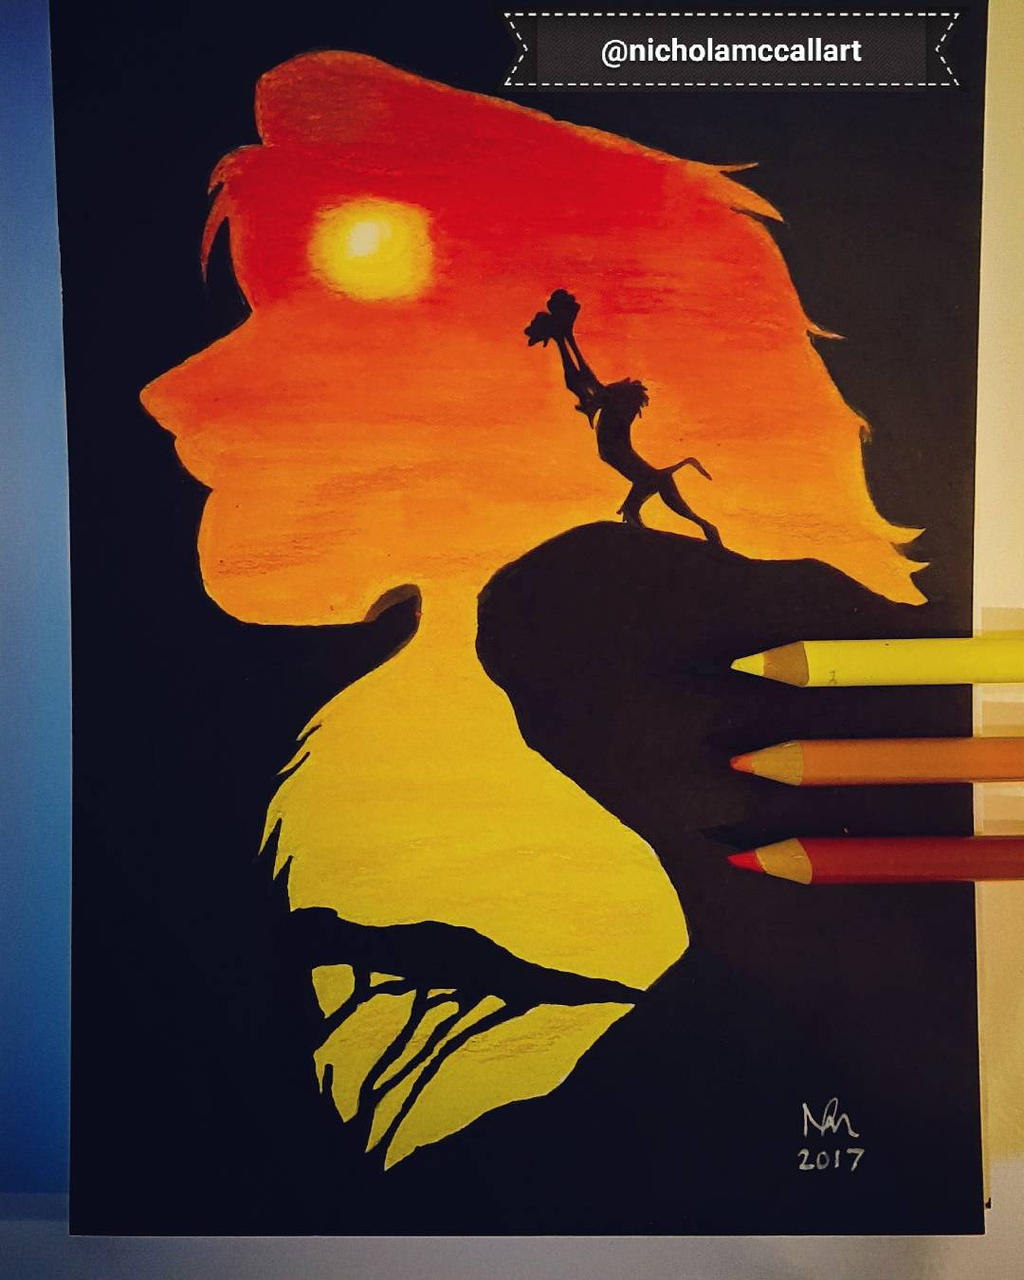 The Circle Of Life The Lion King By Nicholamccallart On Deviantart